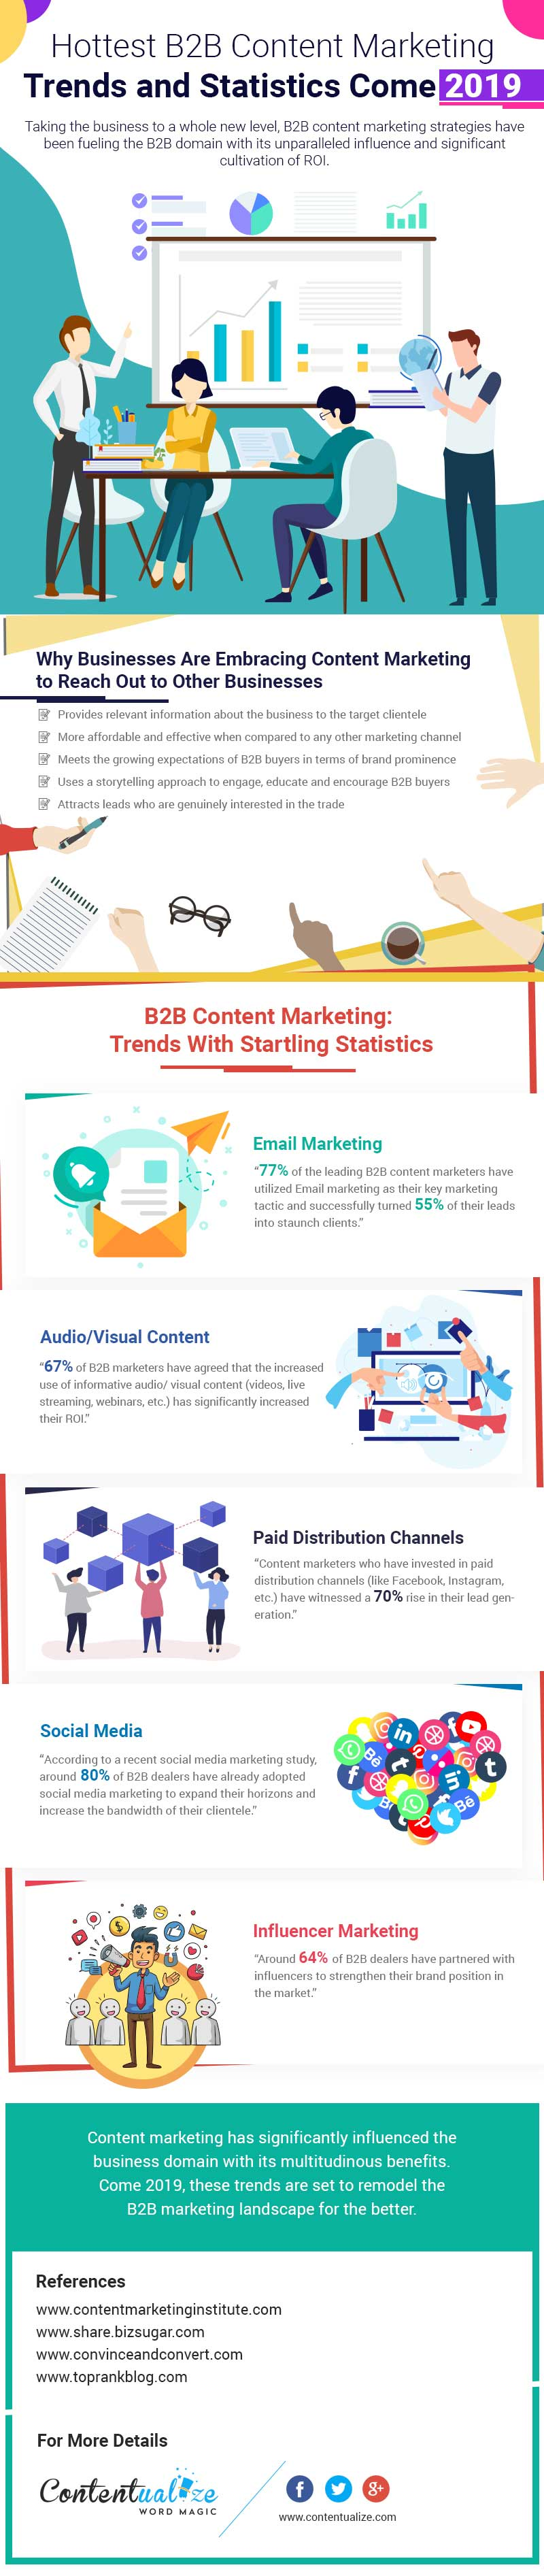 B2B content marketing trends 2019